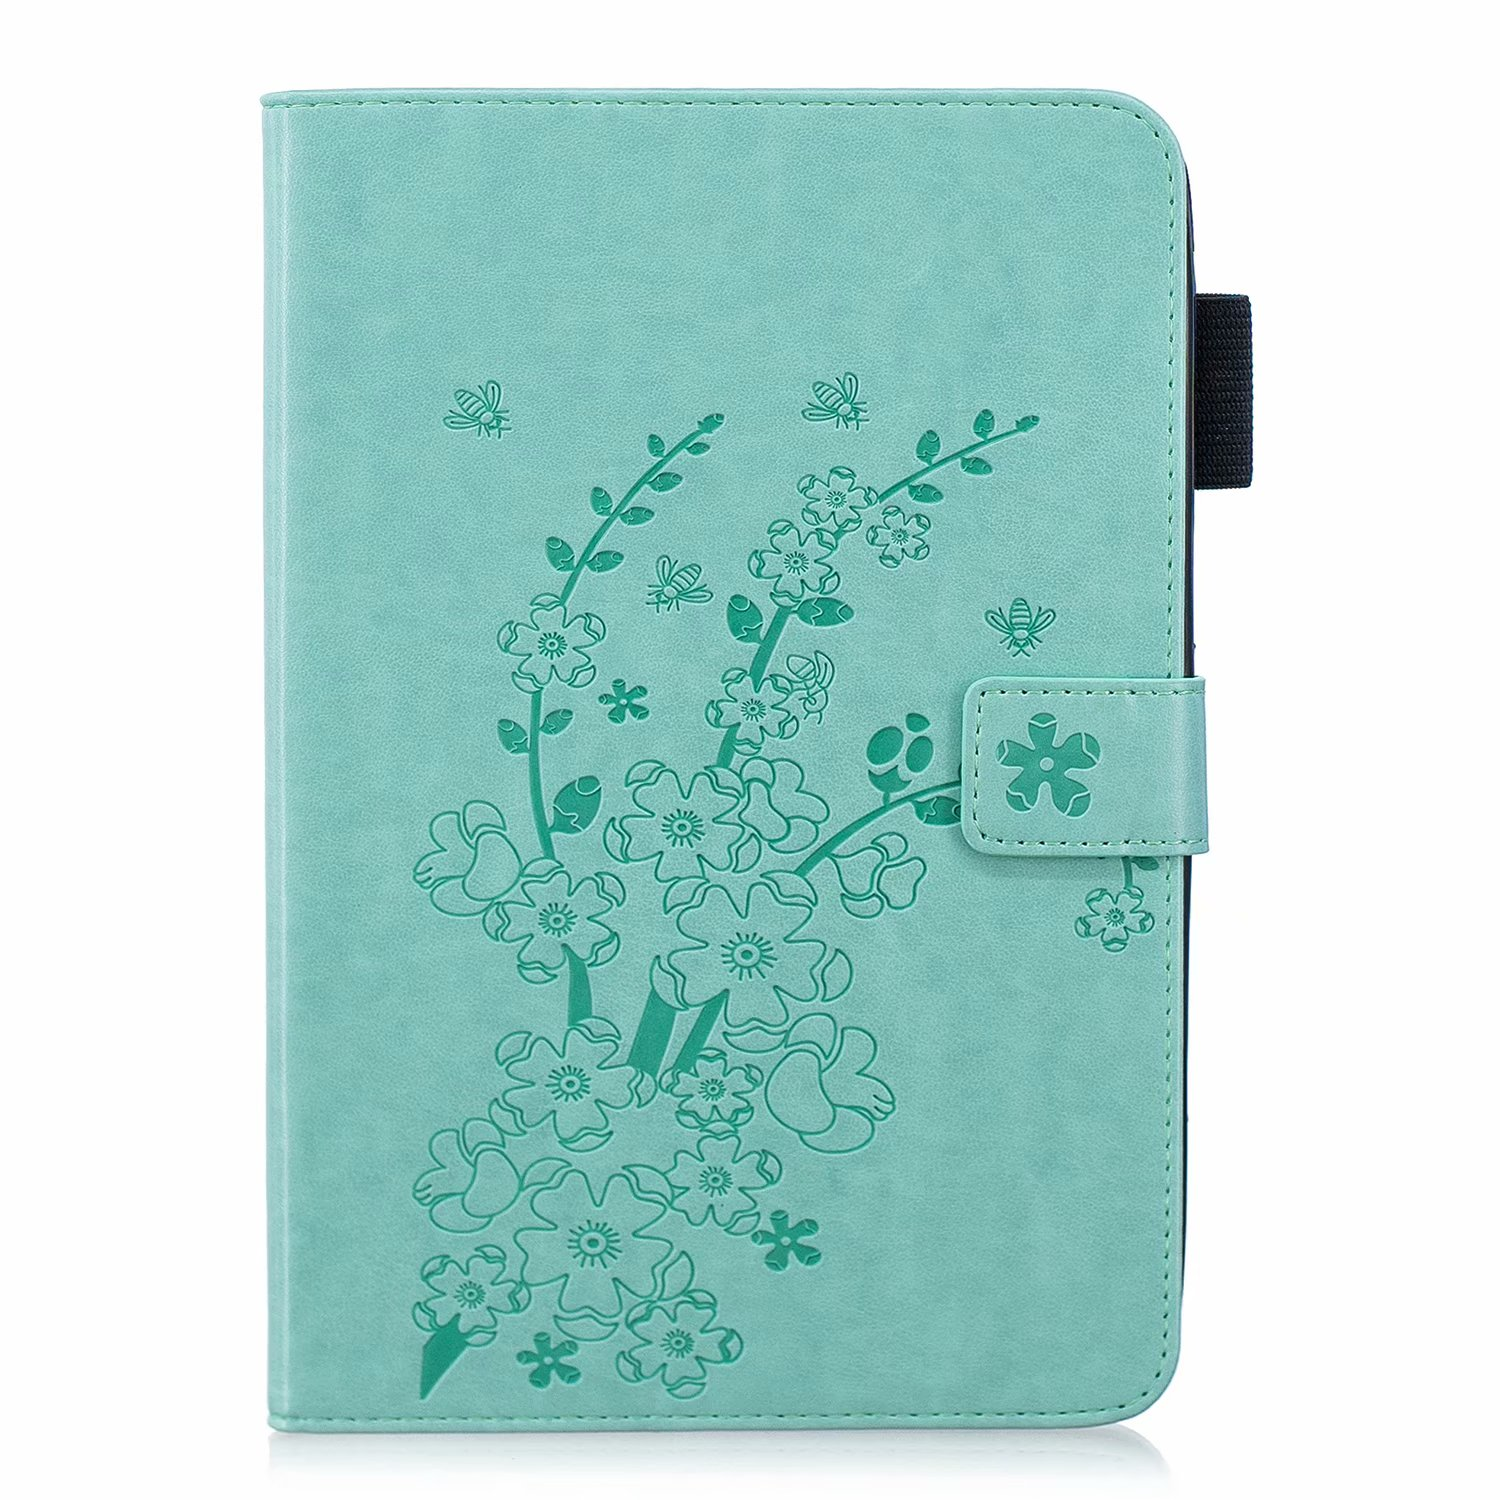 iPad mini Case, Dteck Slim Leather Magnetic Flip Folio Wallet Case Cover With Stylus Holder For iPad mini 1/2/3 7.9-inch Tablet green Plum Blossom